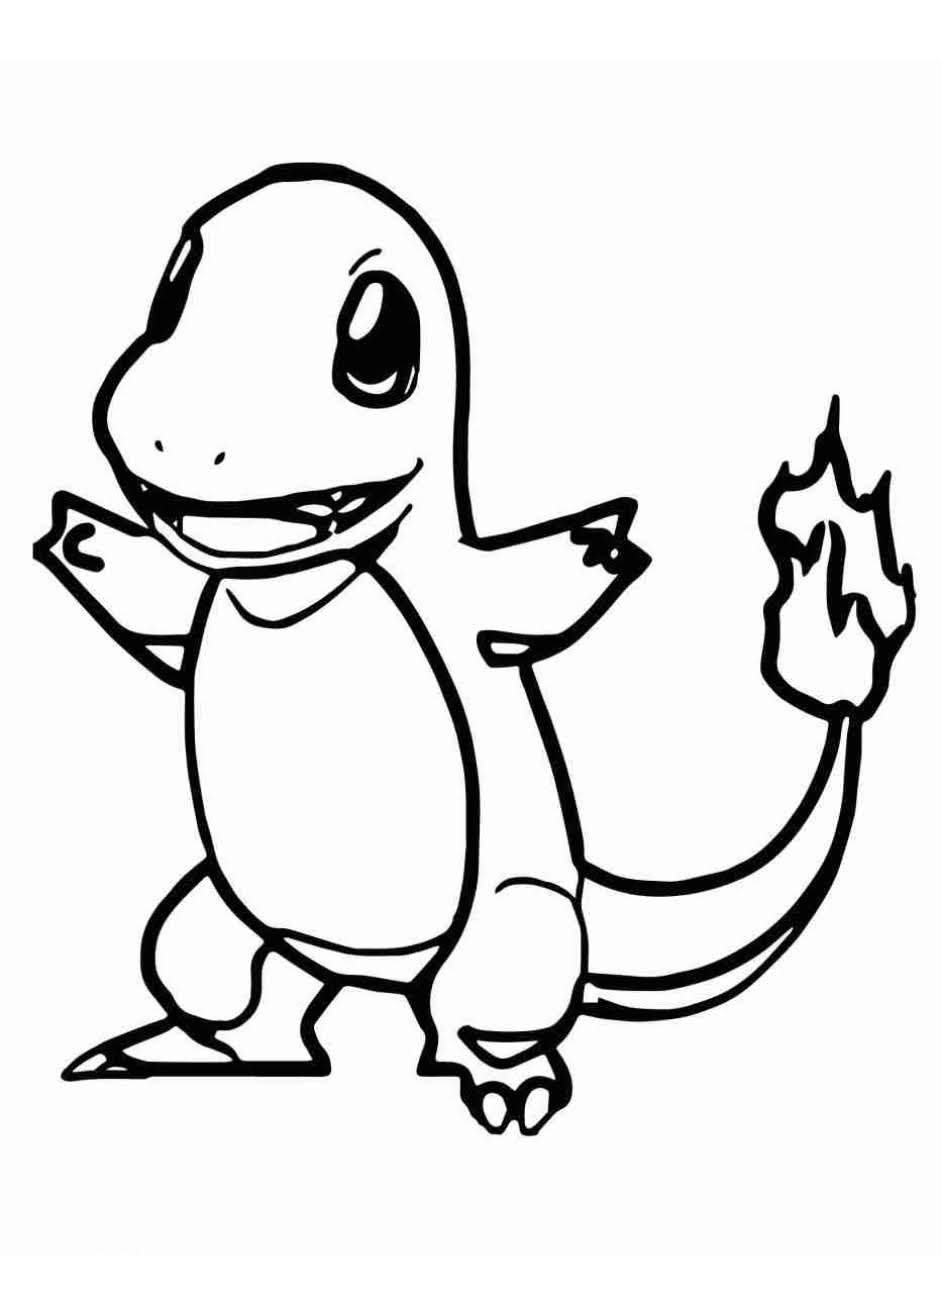 charmander coloring page free coloring pages charmander page coloring